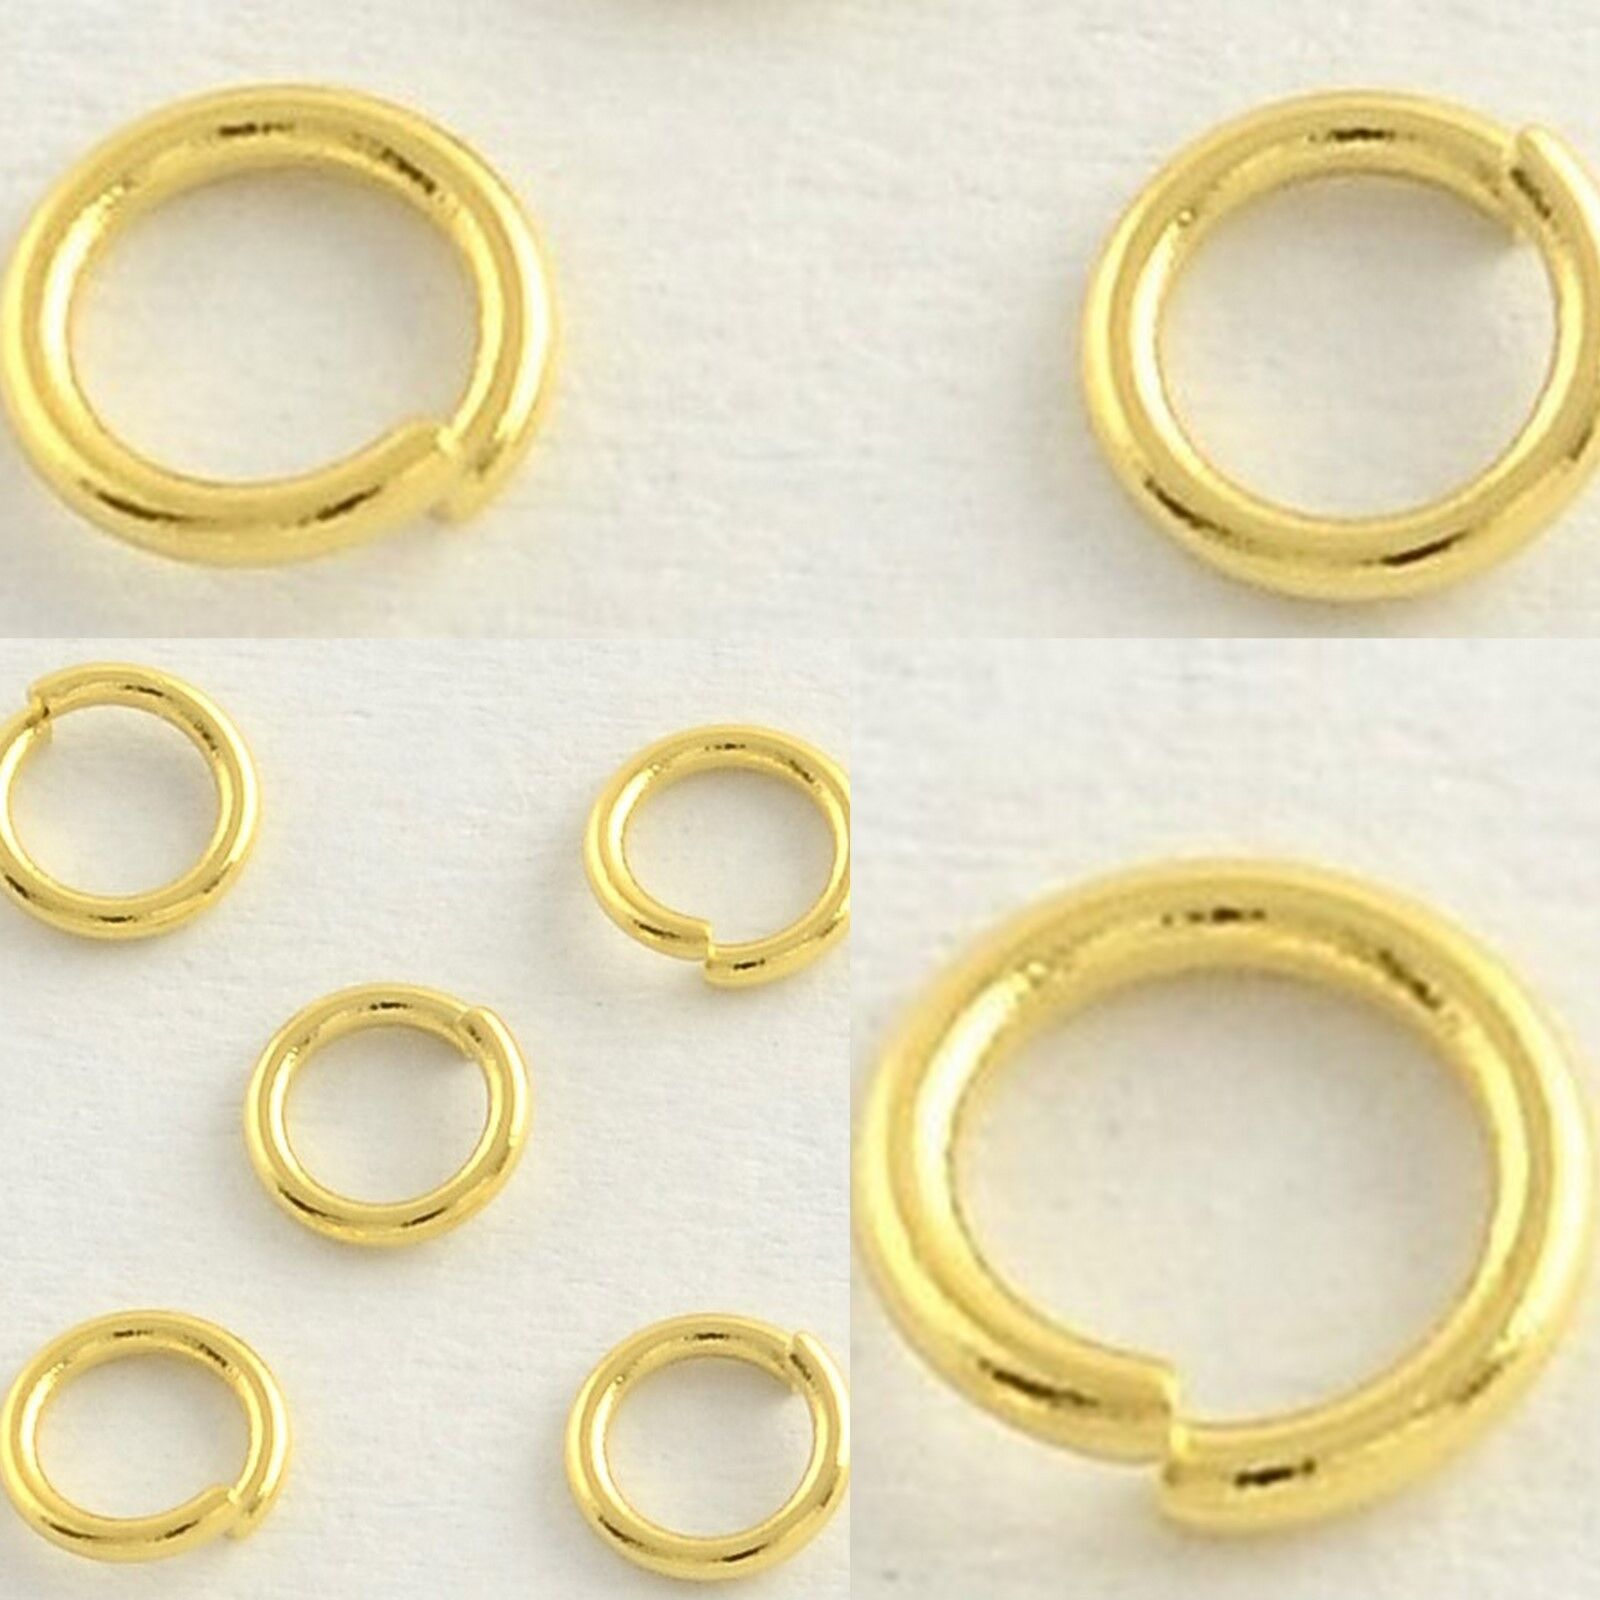 d41cab26fb35d Details about 8mm x .8mm 20 Gauge Gold Plated Stainless Steel Jump Rings  Findings Connector